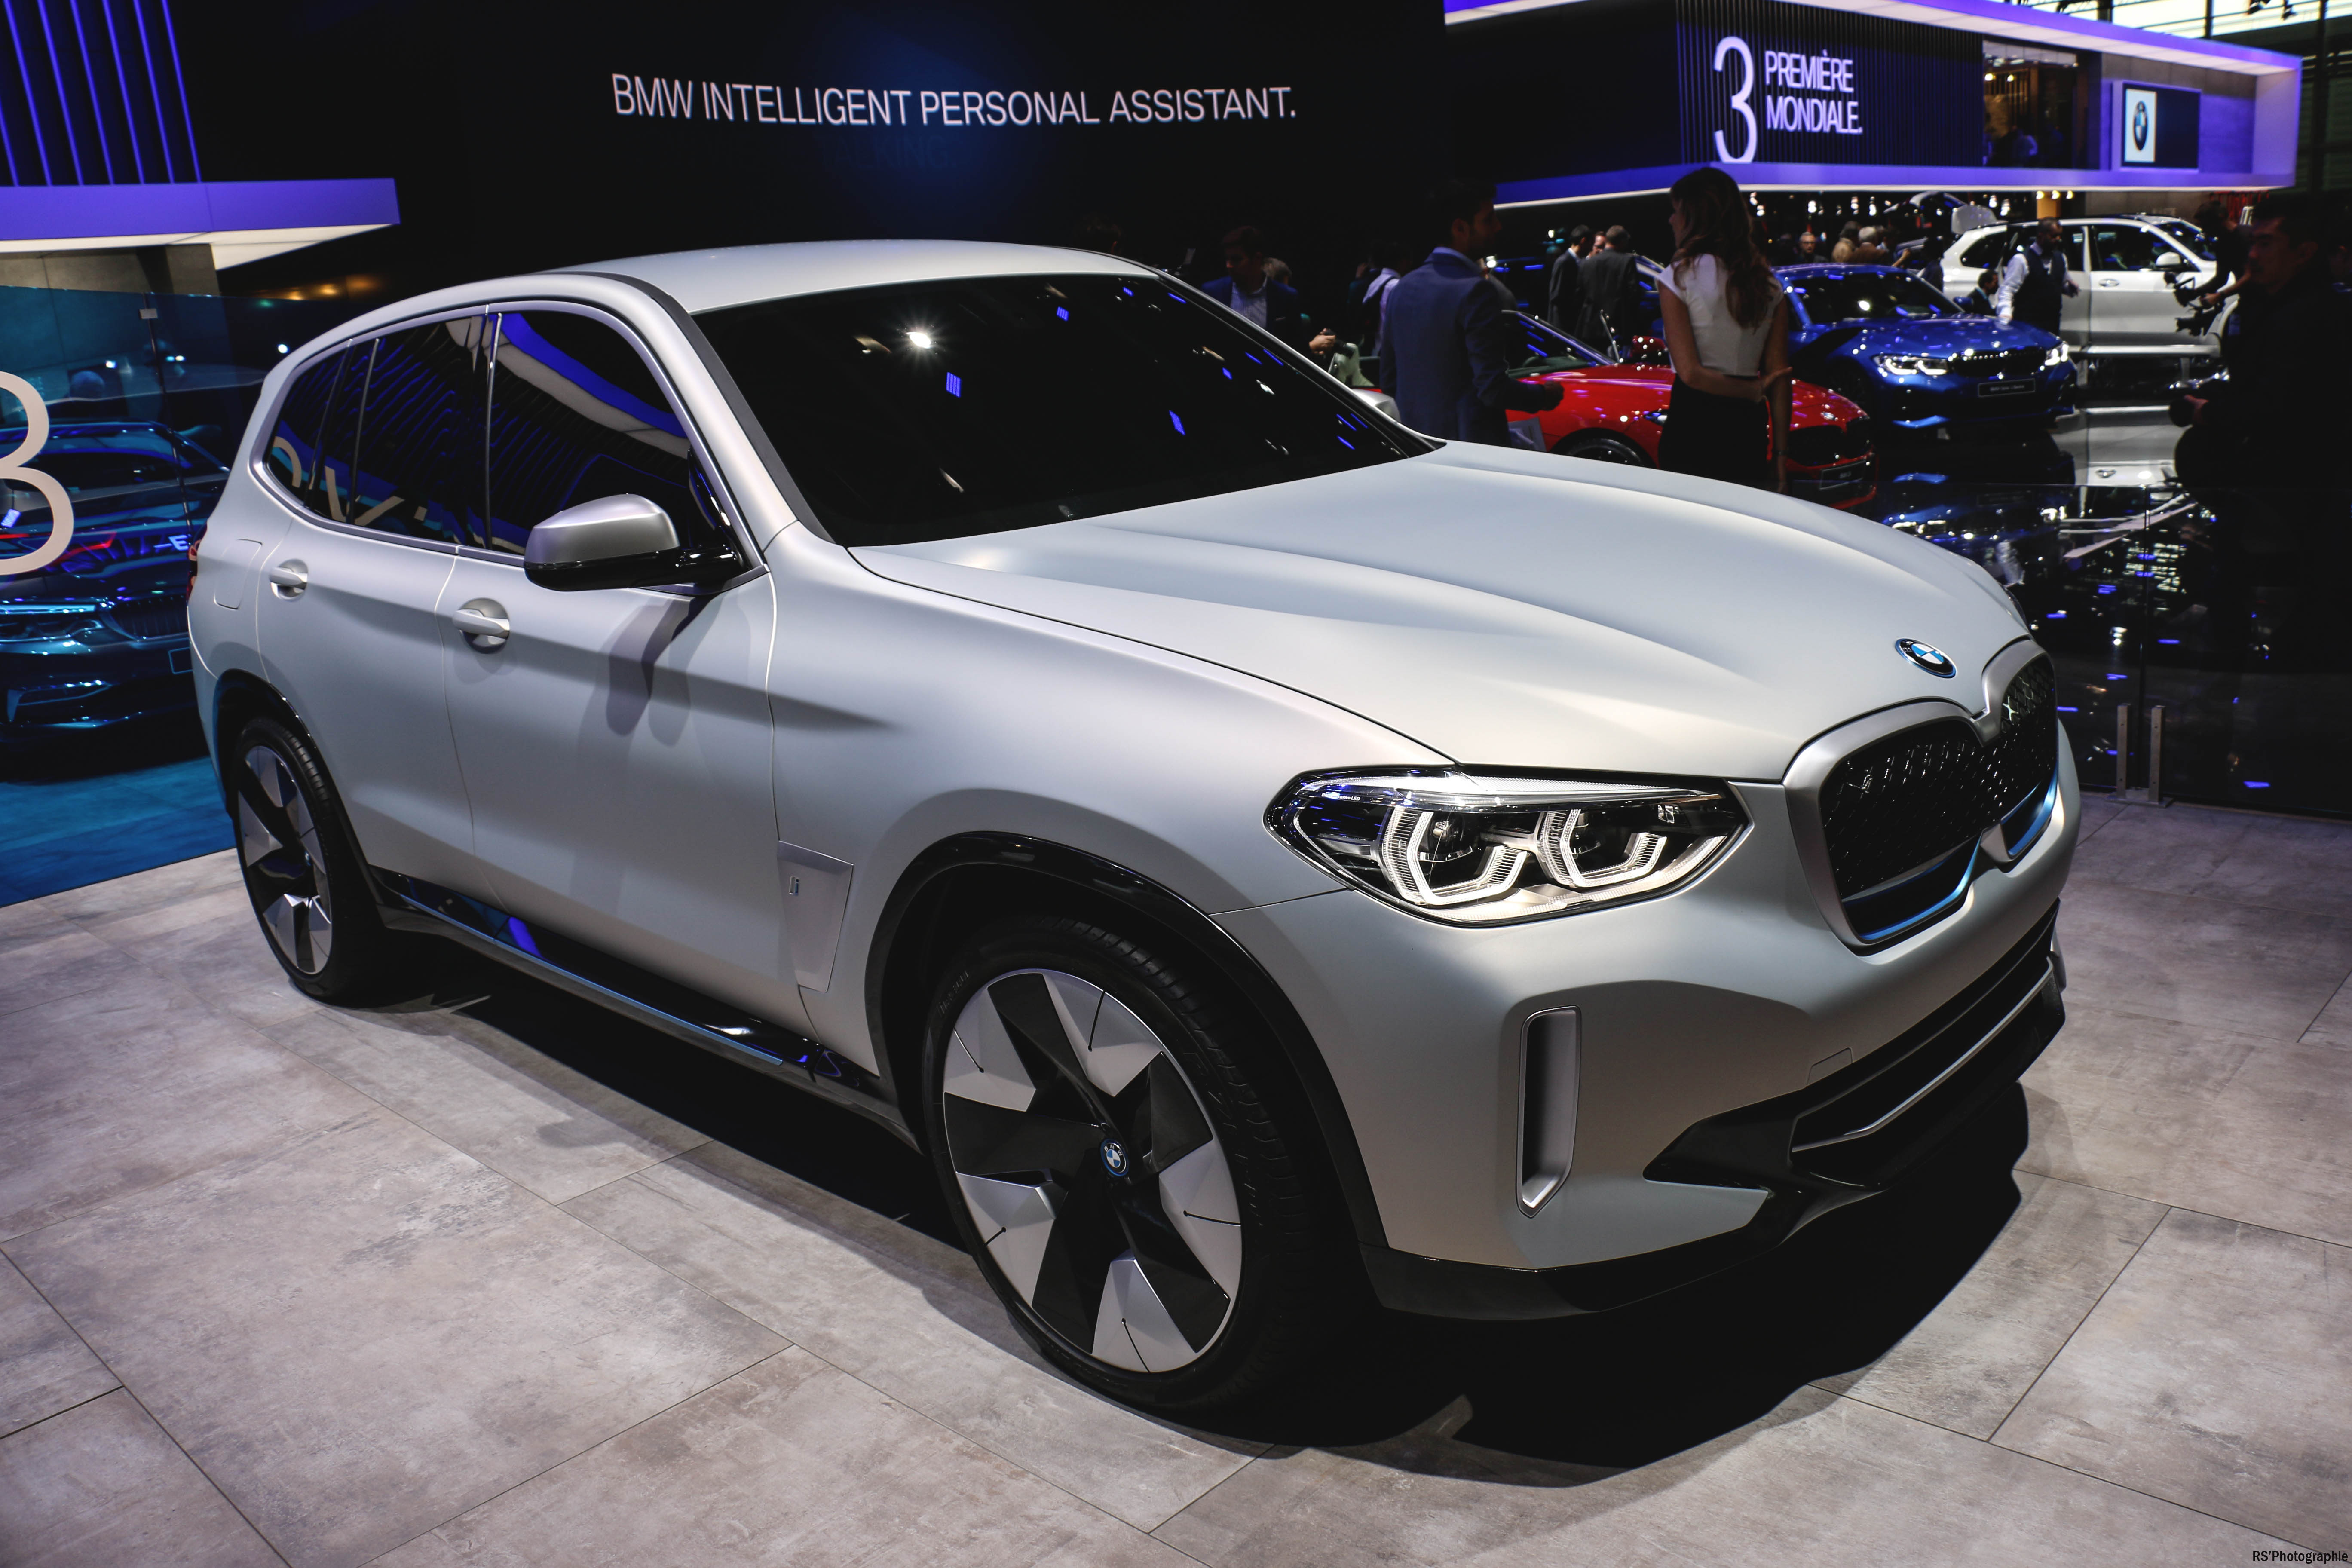 BMW iX3 concept - rear - Paris Motor Show - 2018 - Mondial Auto - photo by Arnaud Demasier RS Photographie